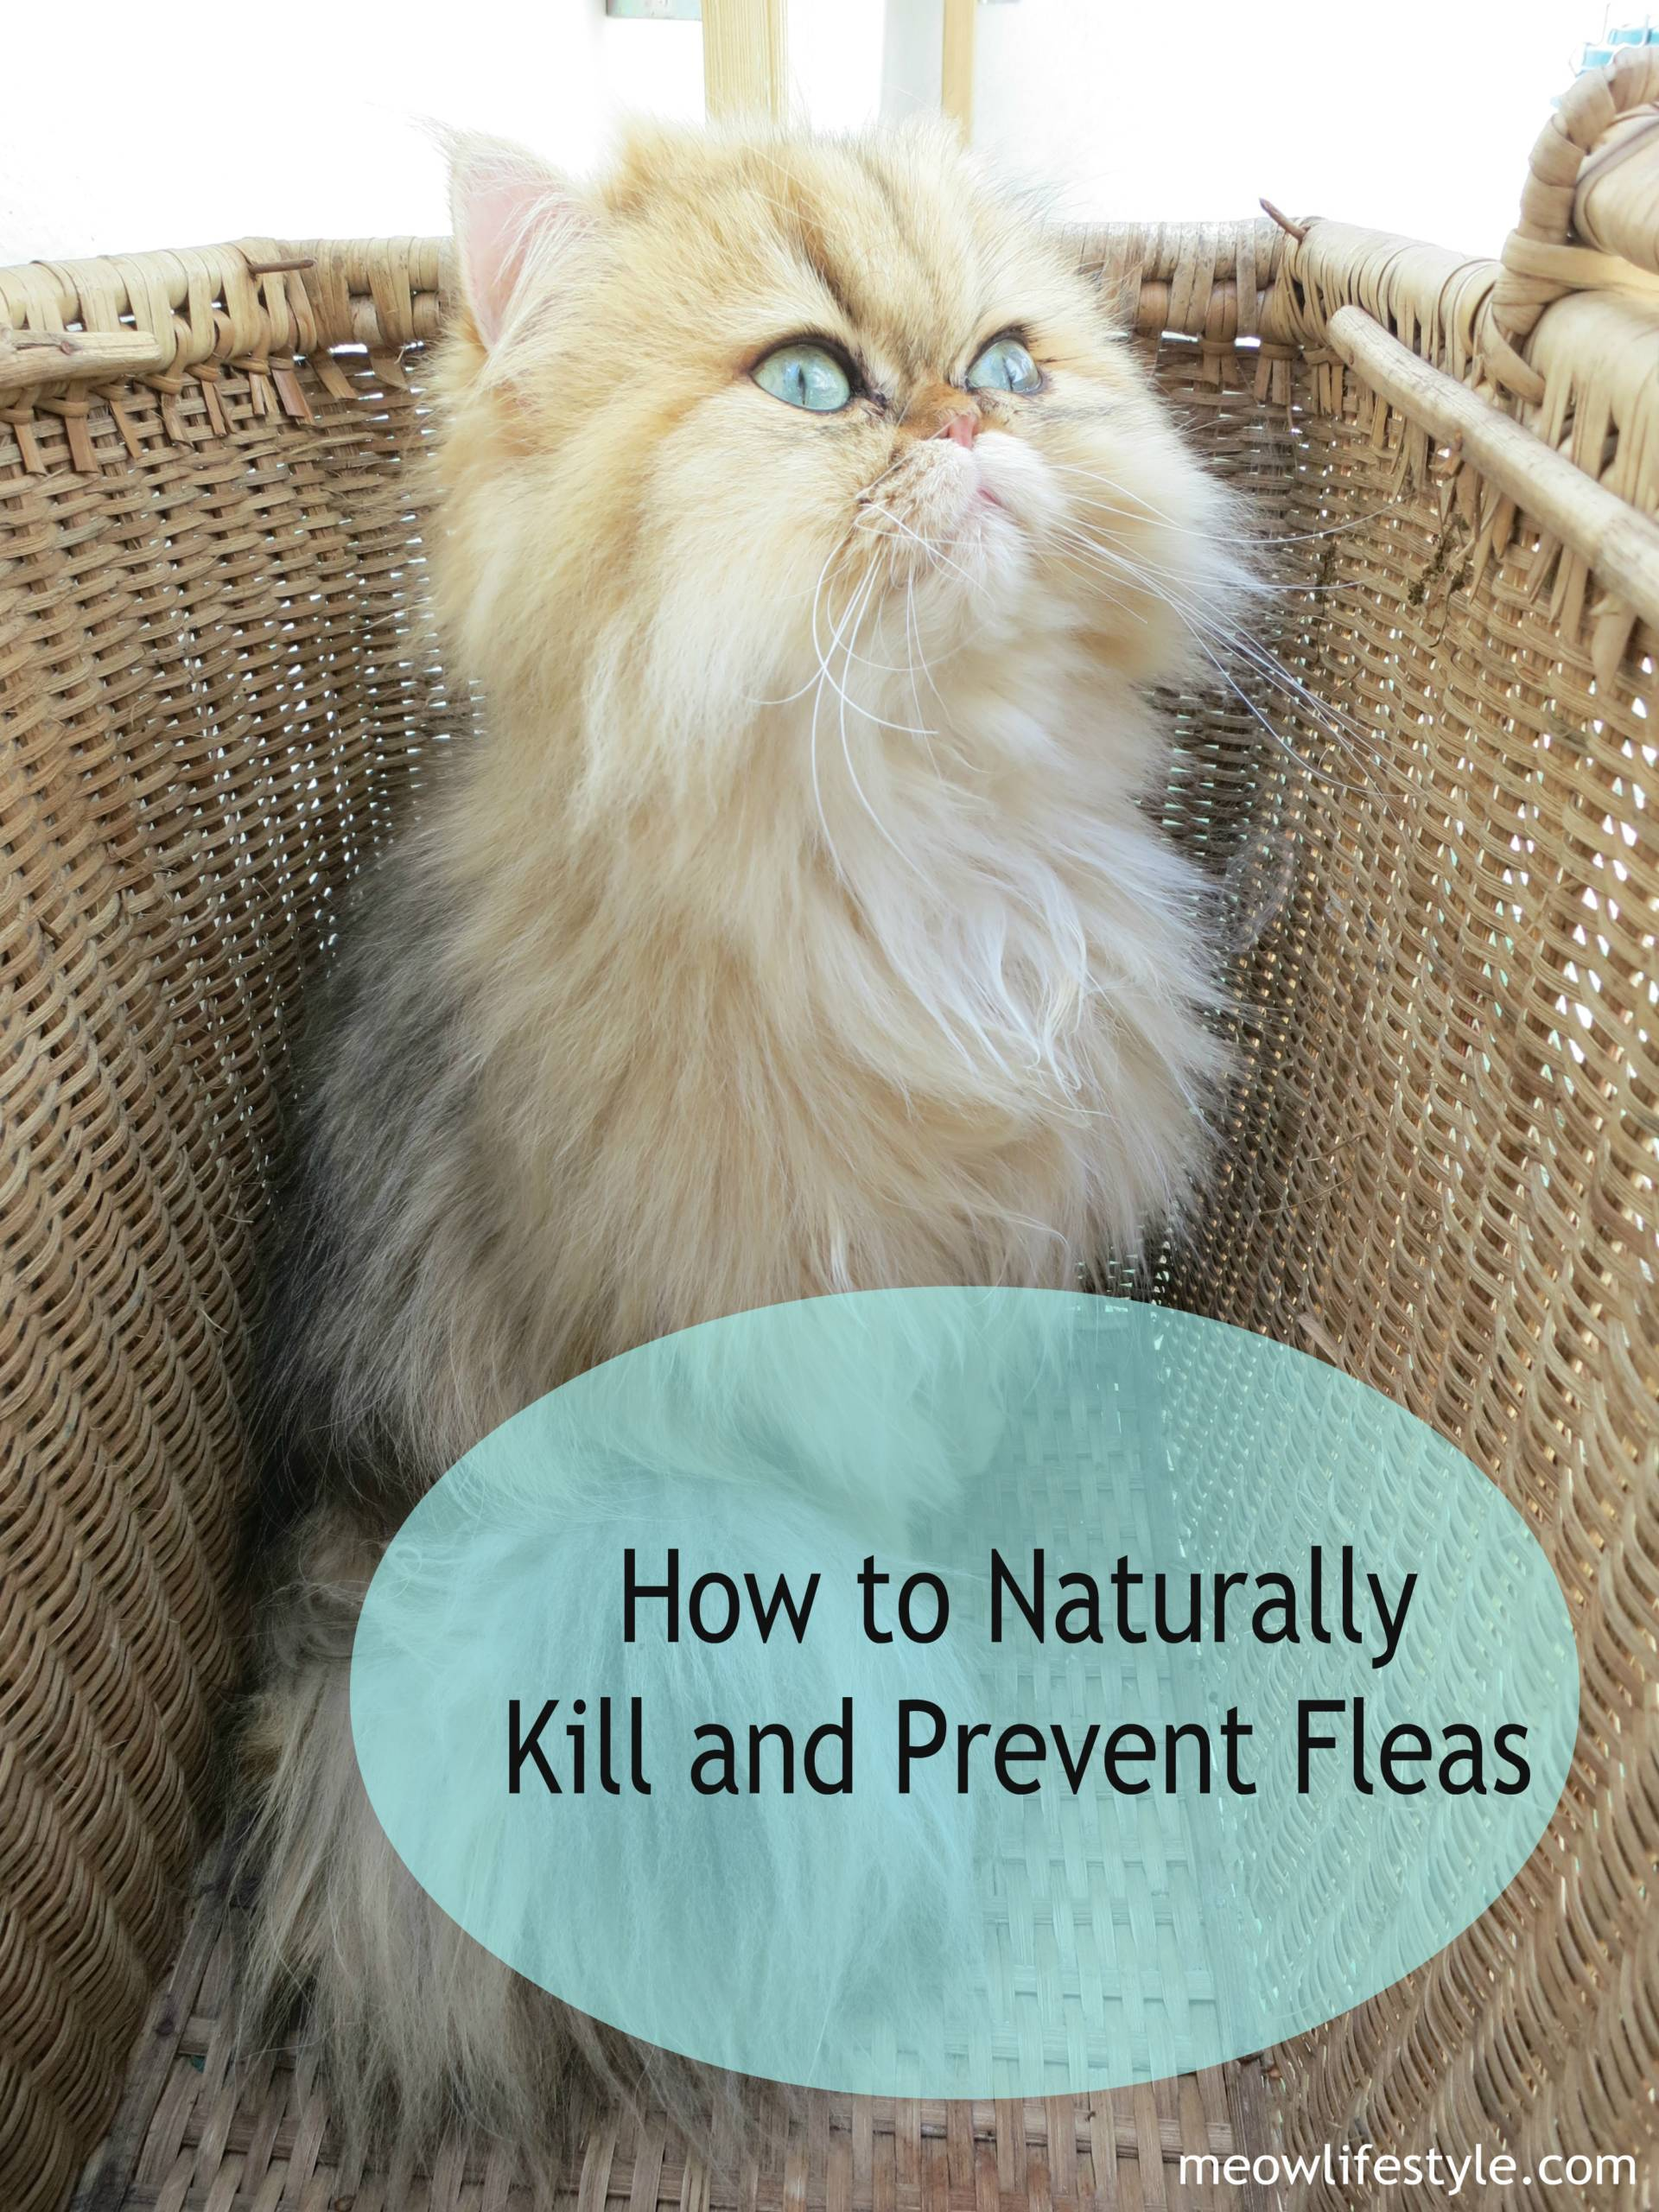 How to Naturally Kill and Prevent Fleas